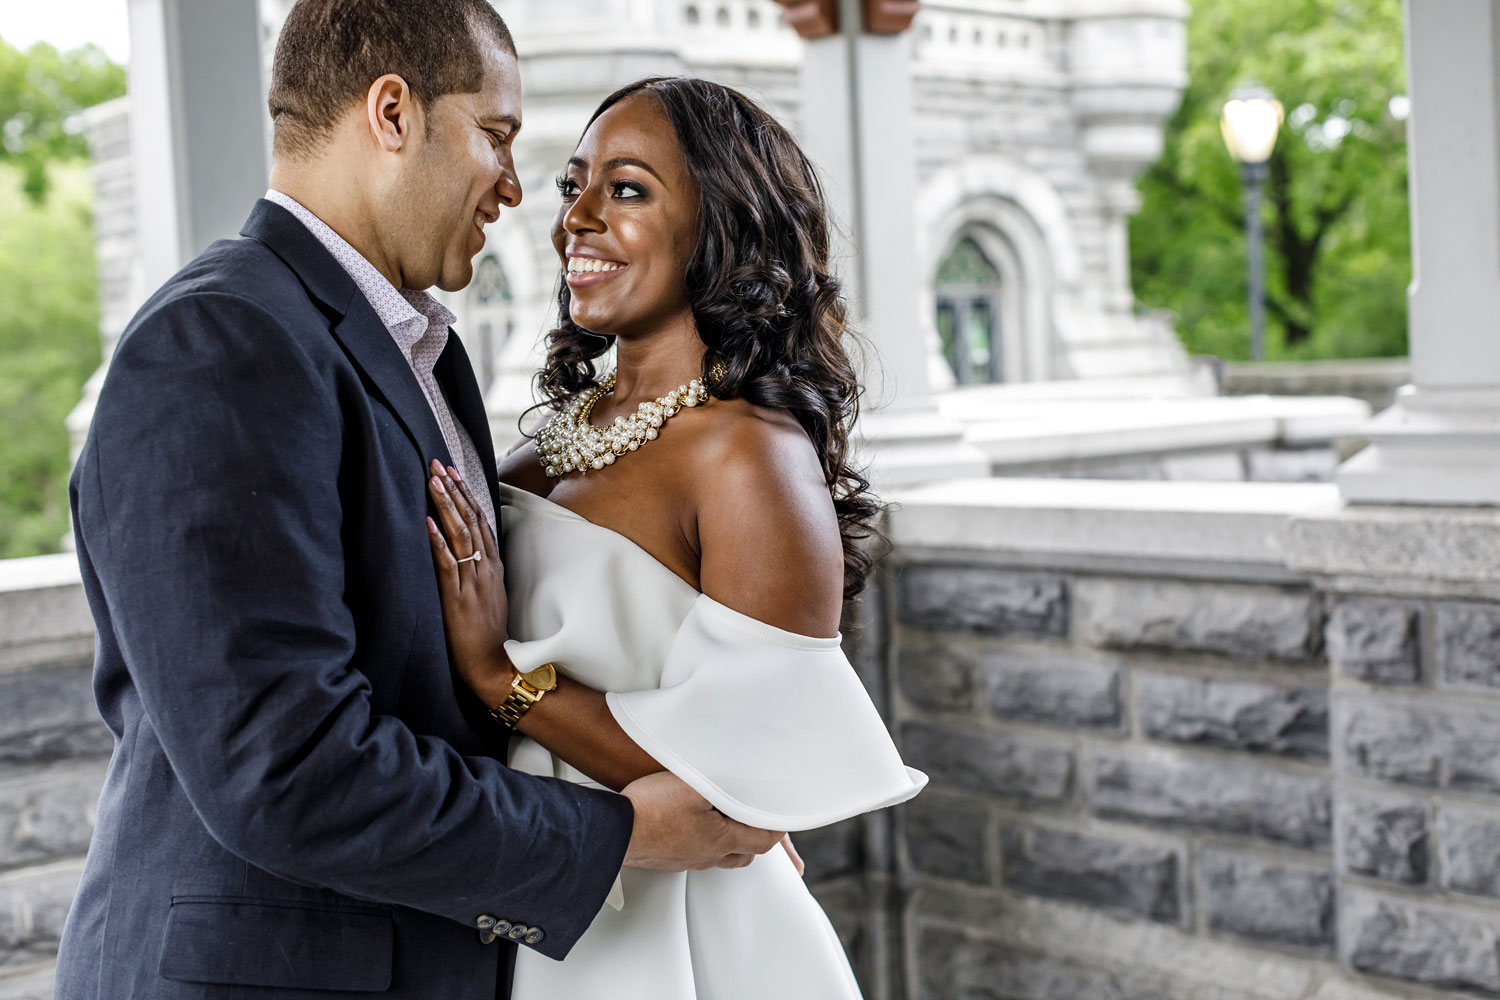 New York City central park engagement session photo by Amy Anaiz bride in white dress and groom in suit